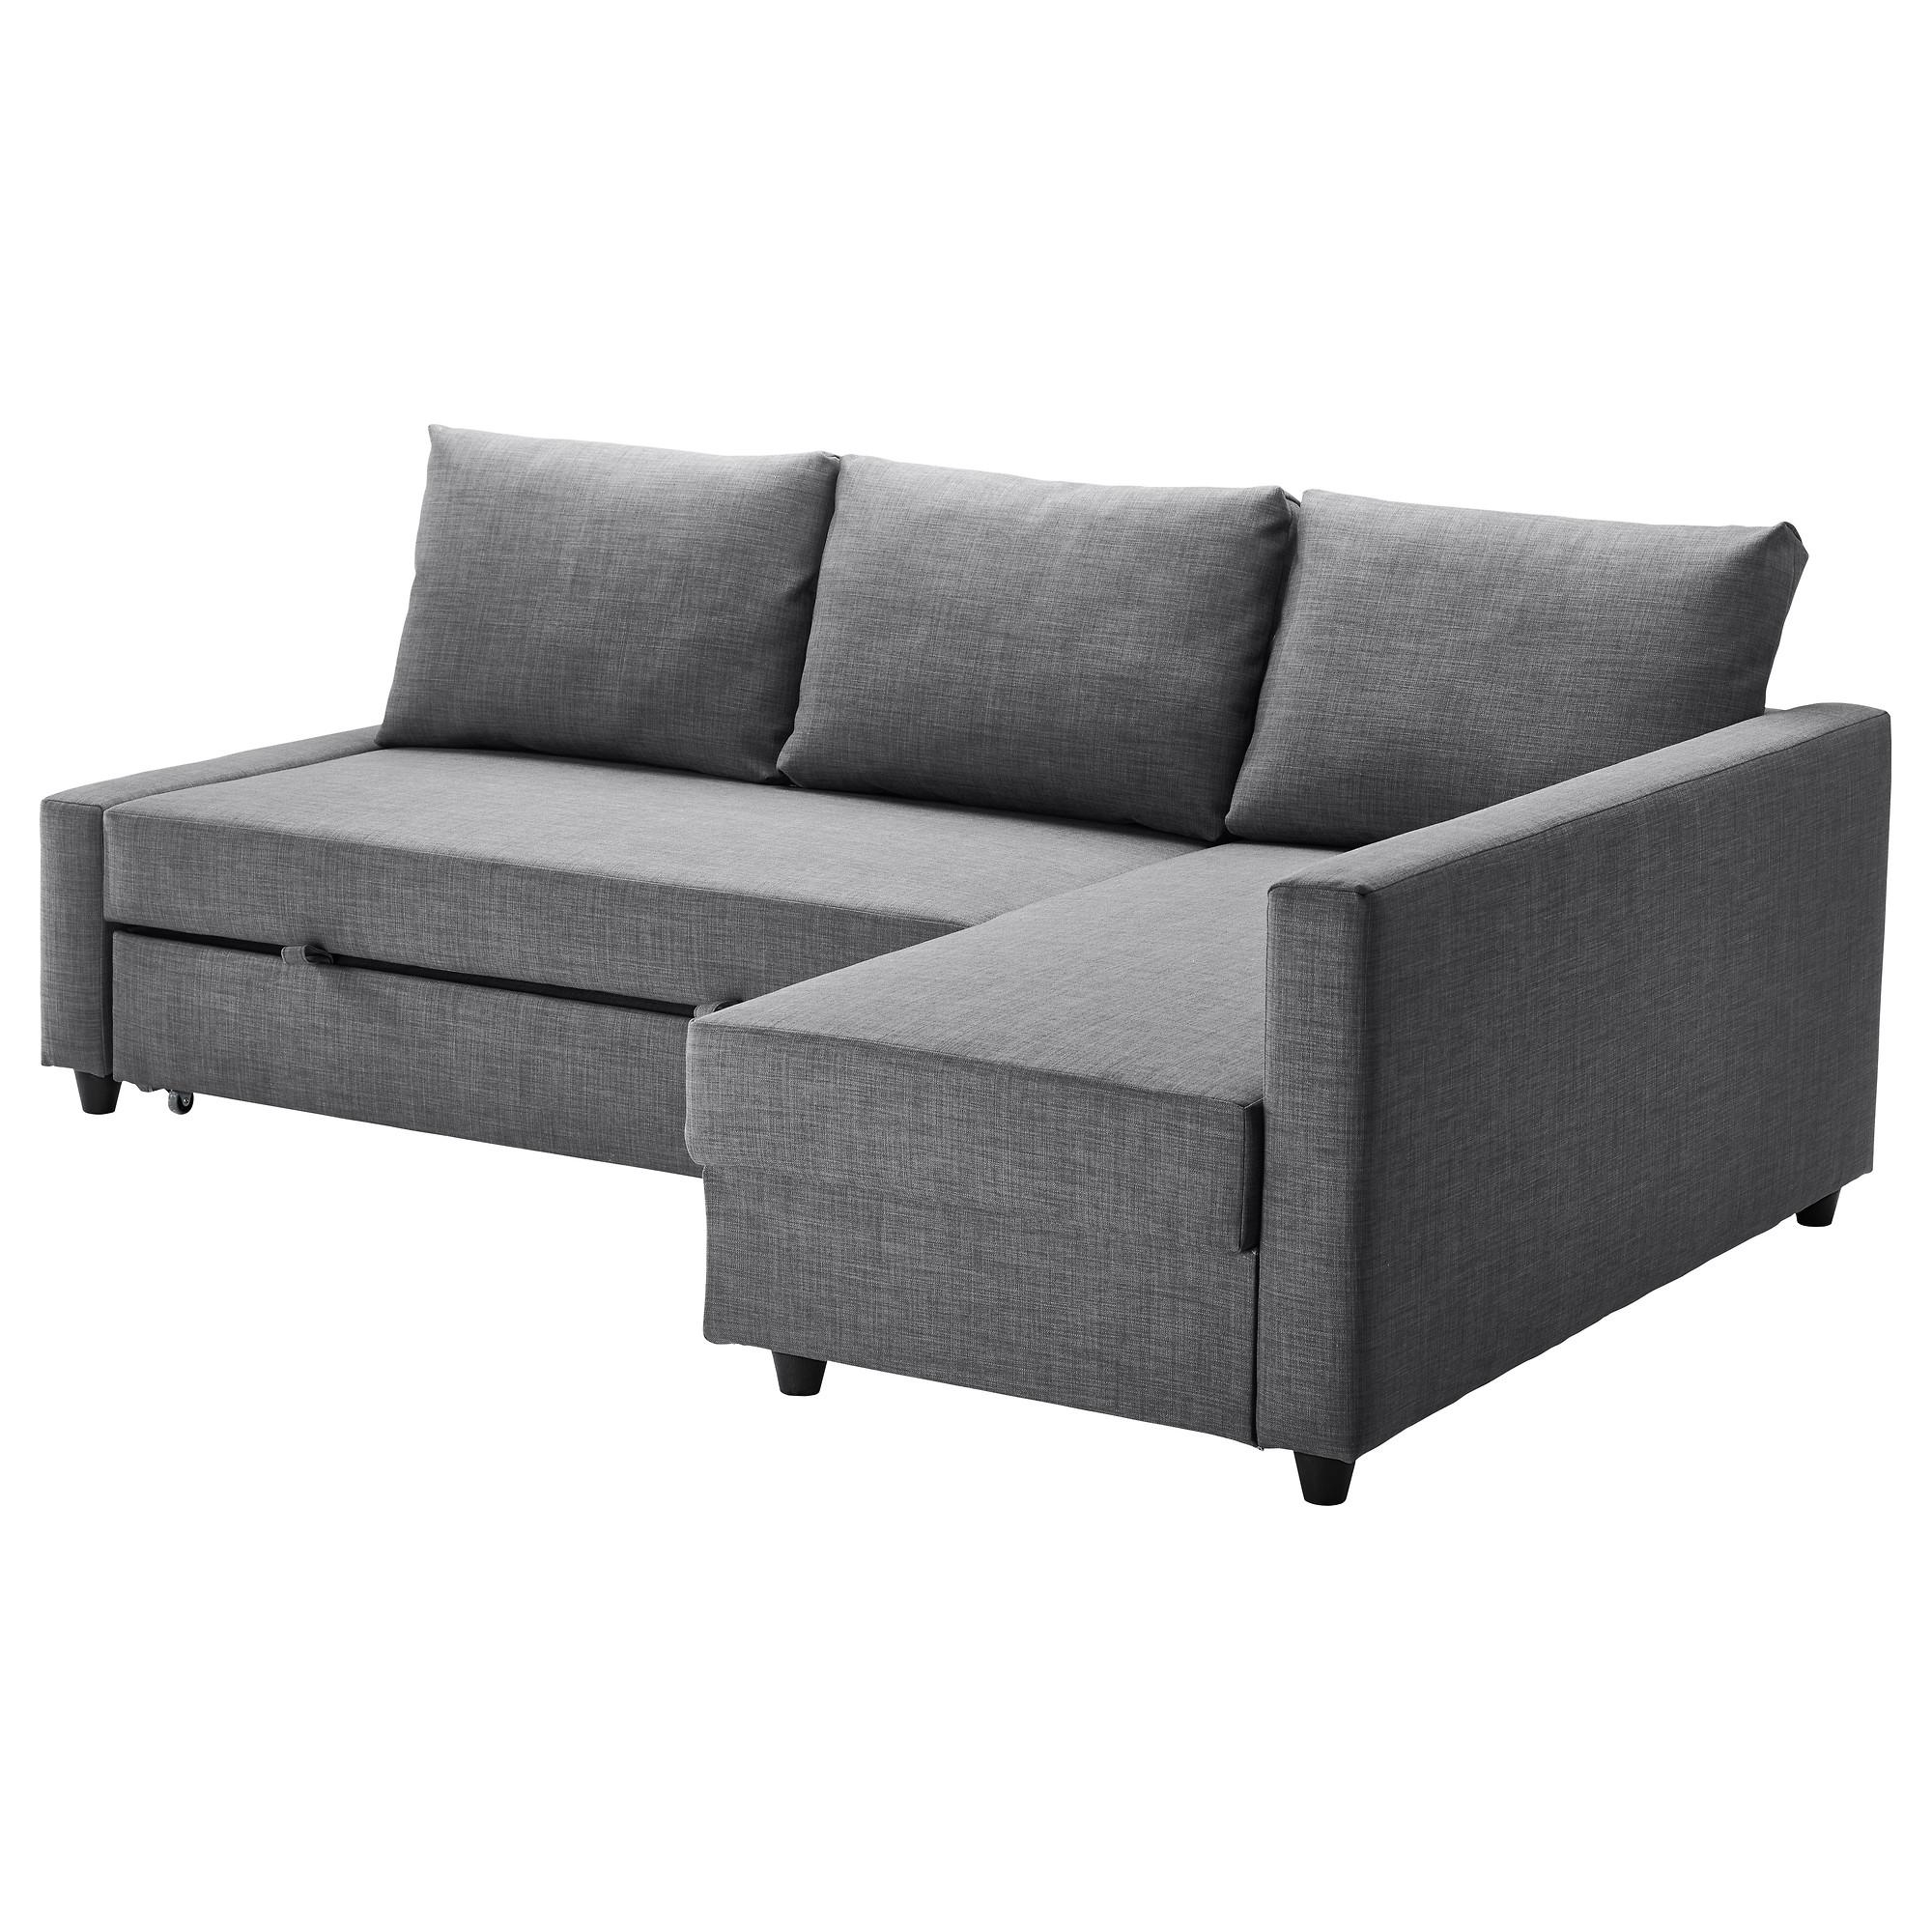 Featured Image of Ikea Sectional Sofa Bed